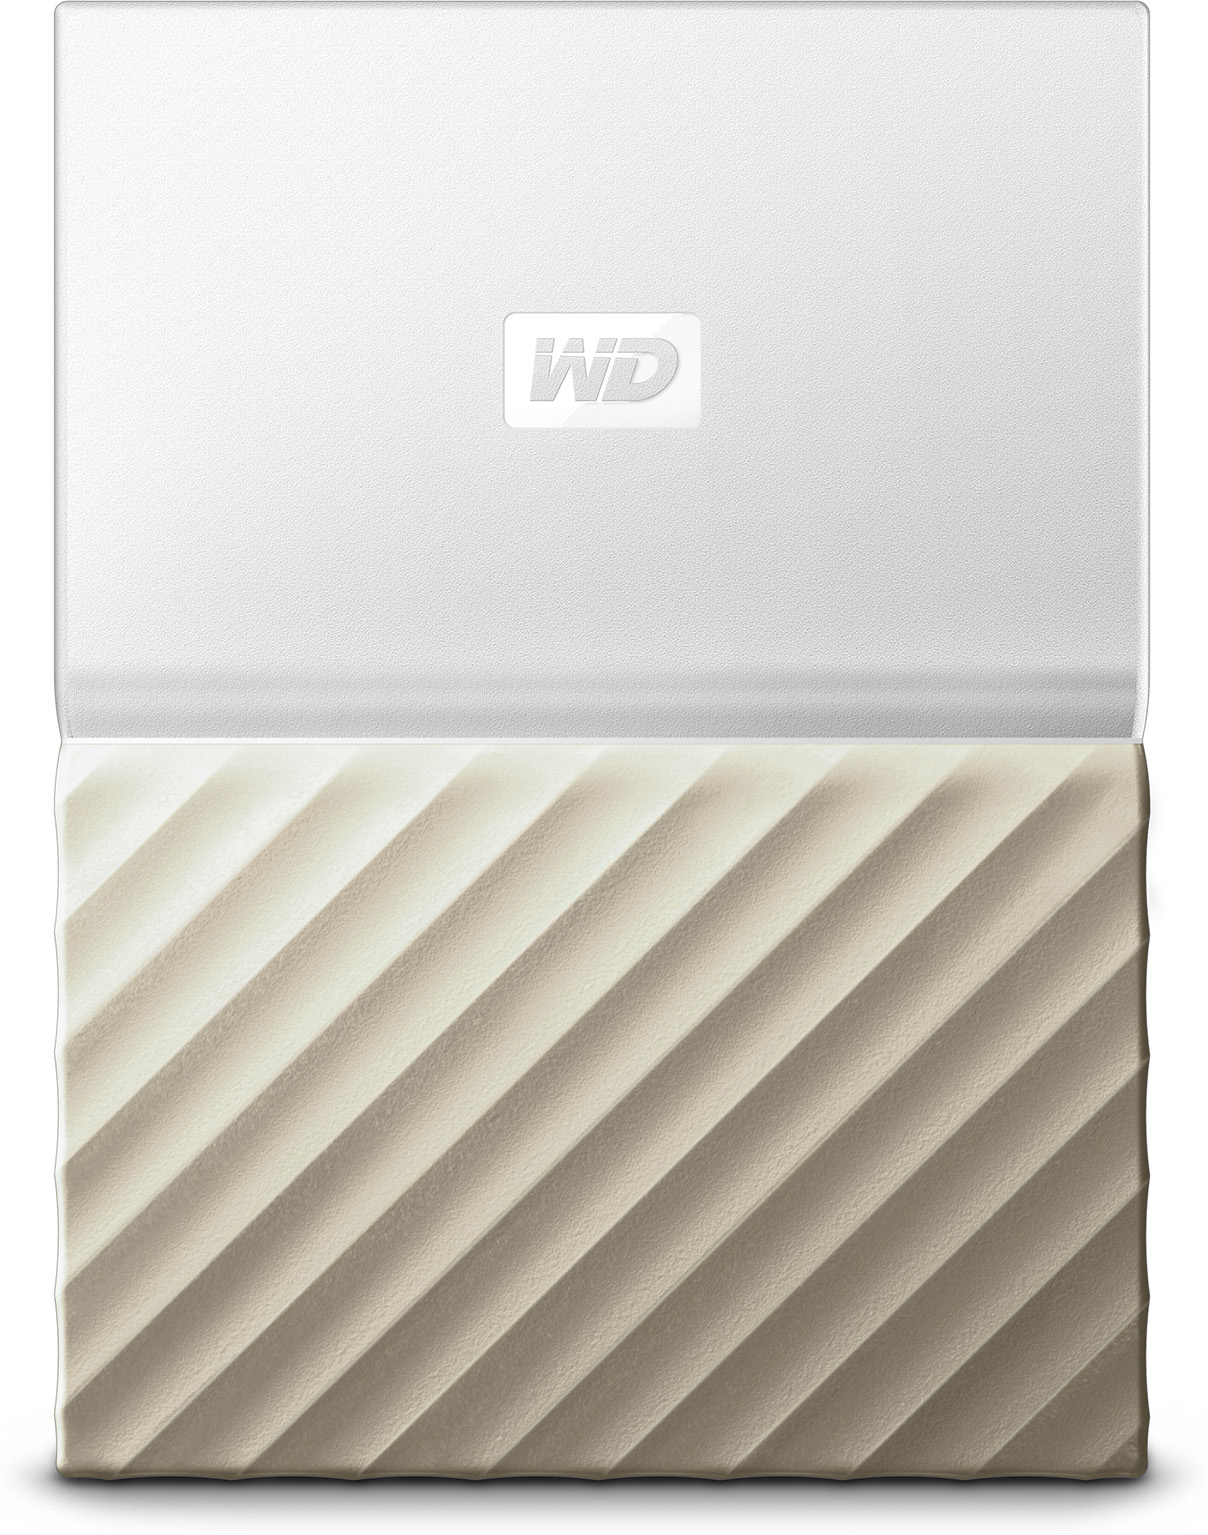 RWaHyO?ver=944c - Western Digital My Passport Ultra 2TB Portable Hard Drive (White/Gold)